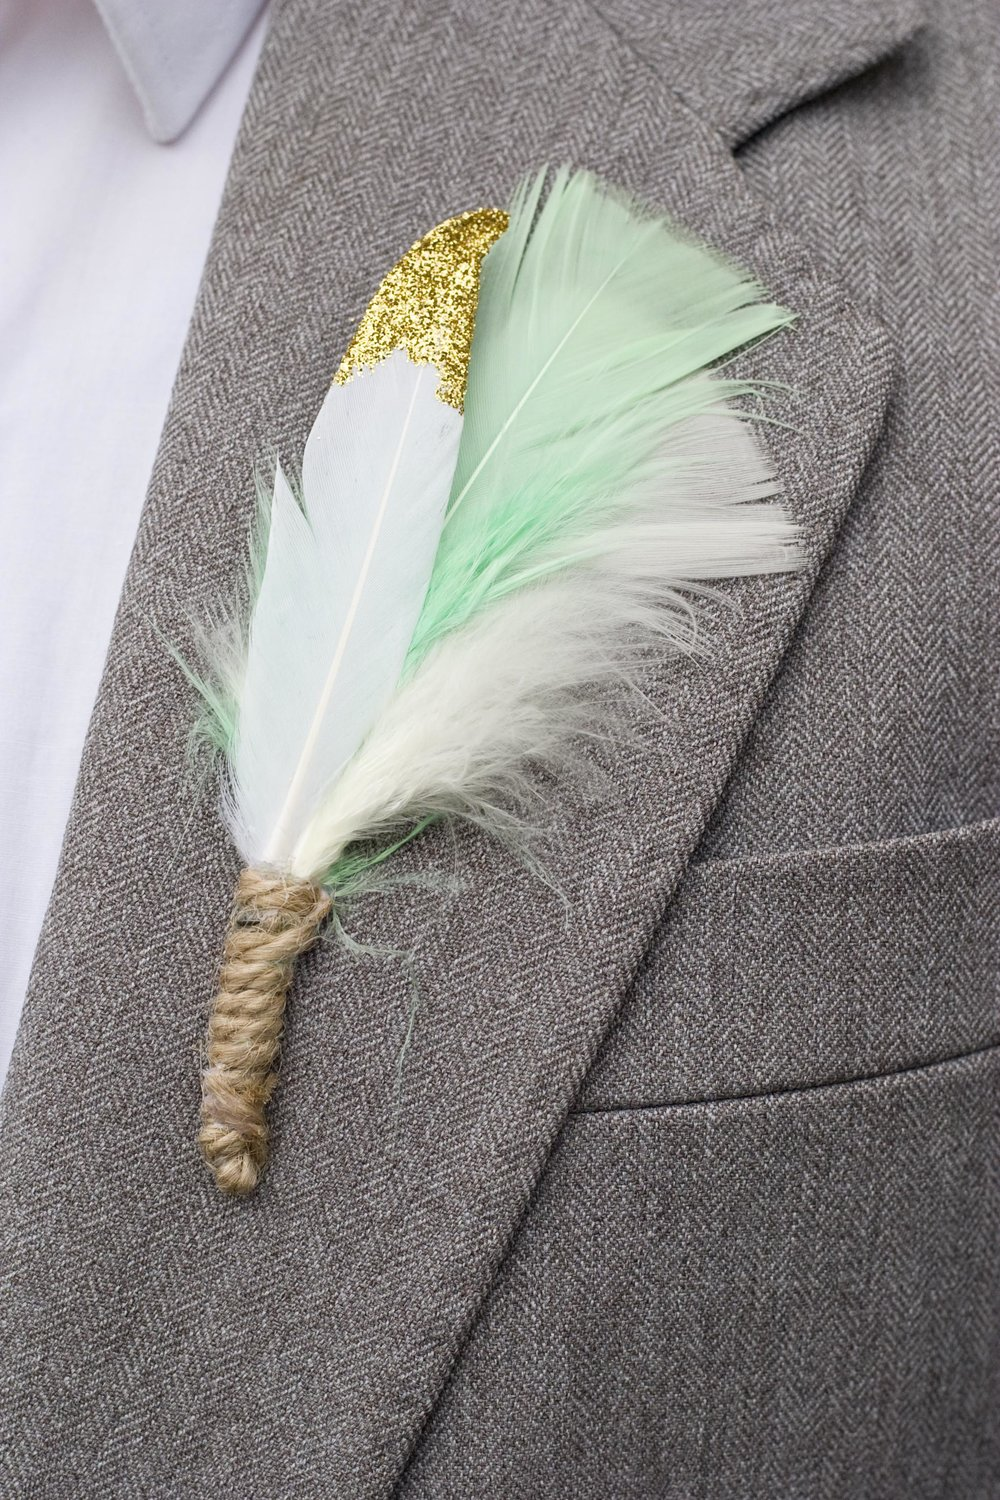 These mint feather buttonholes are available in my shop here.